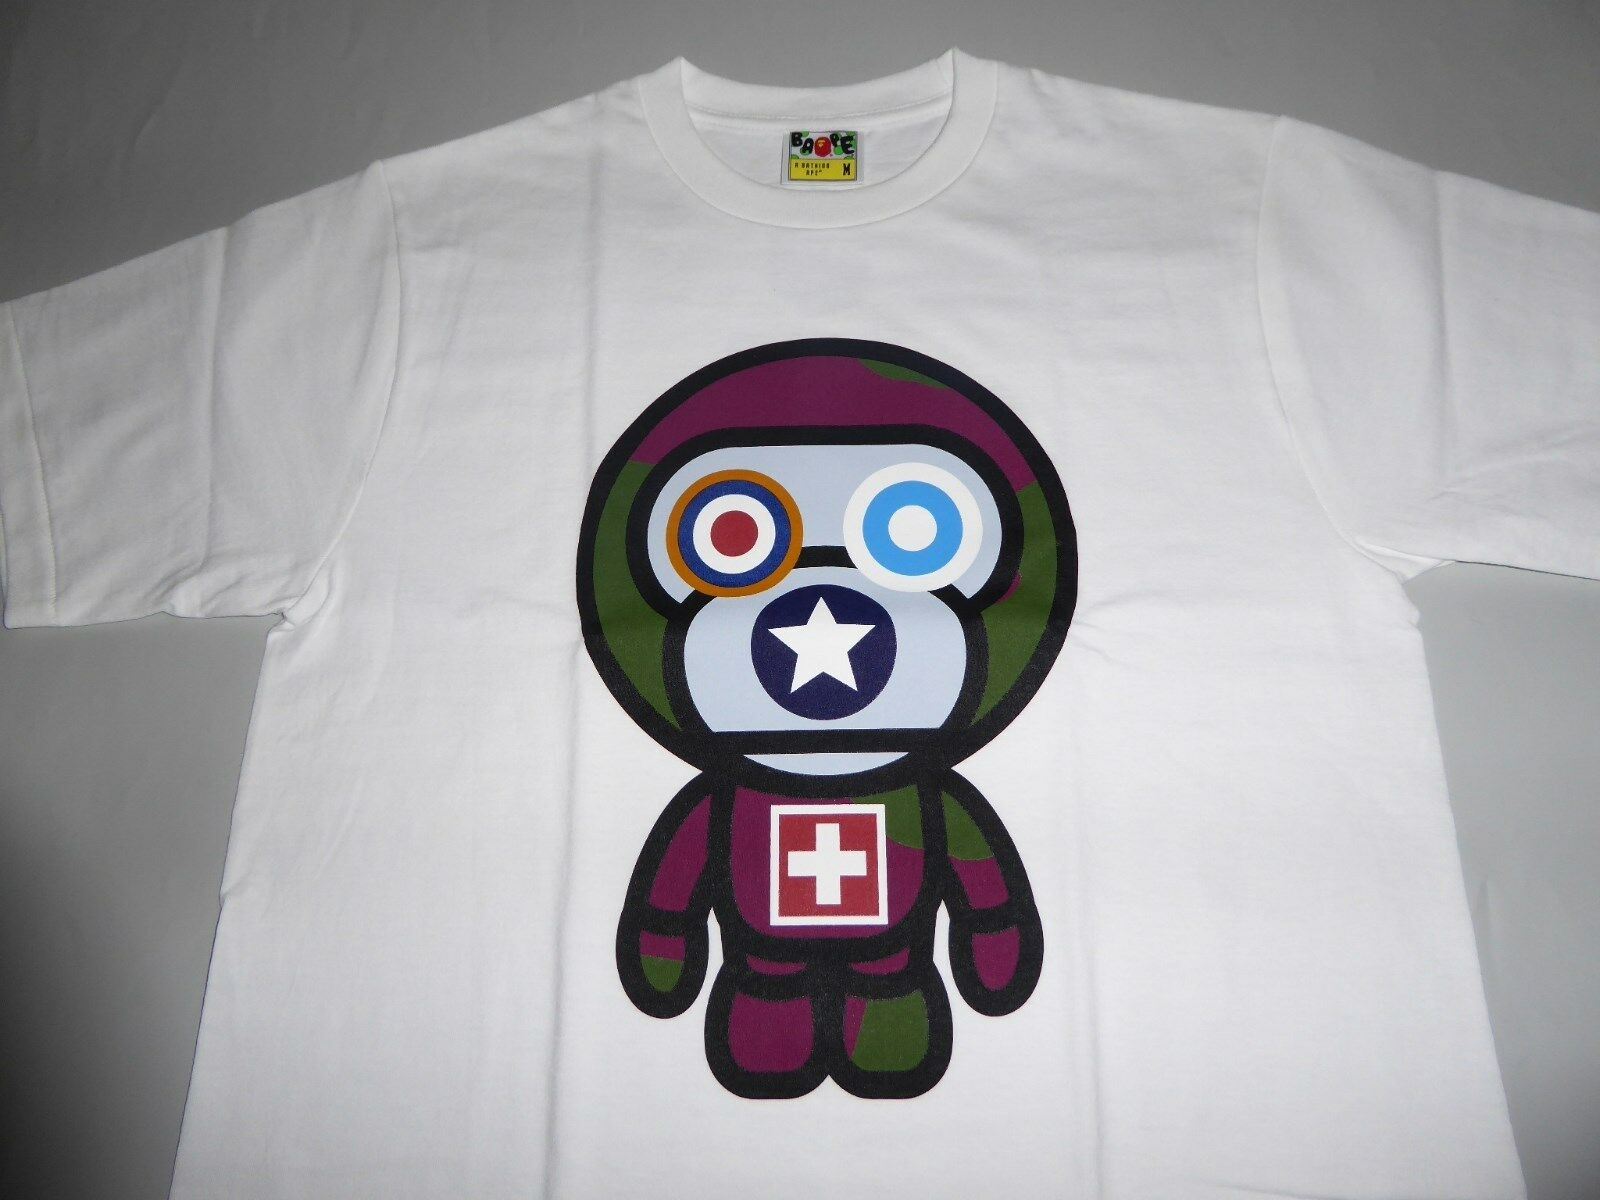 18843 bape 10artists baby milo by skatething tee L